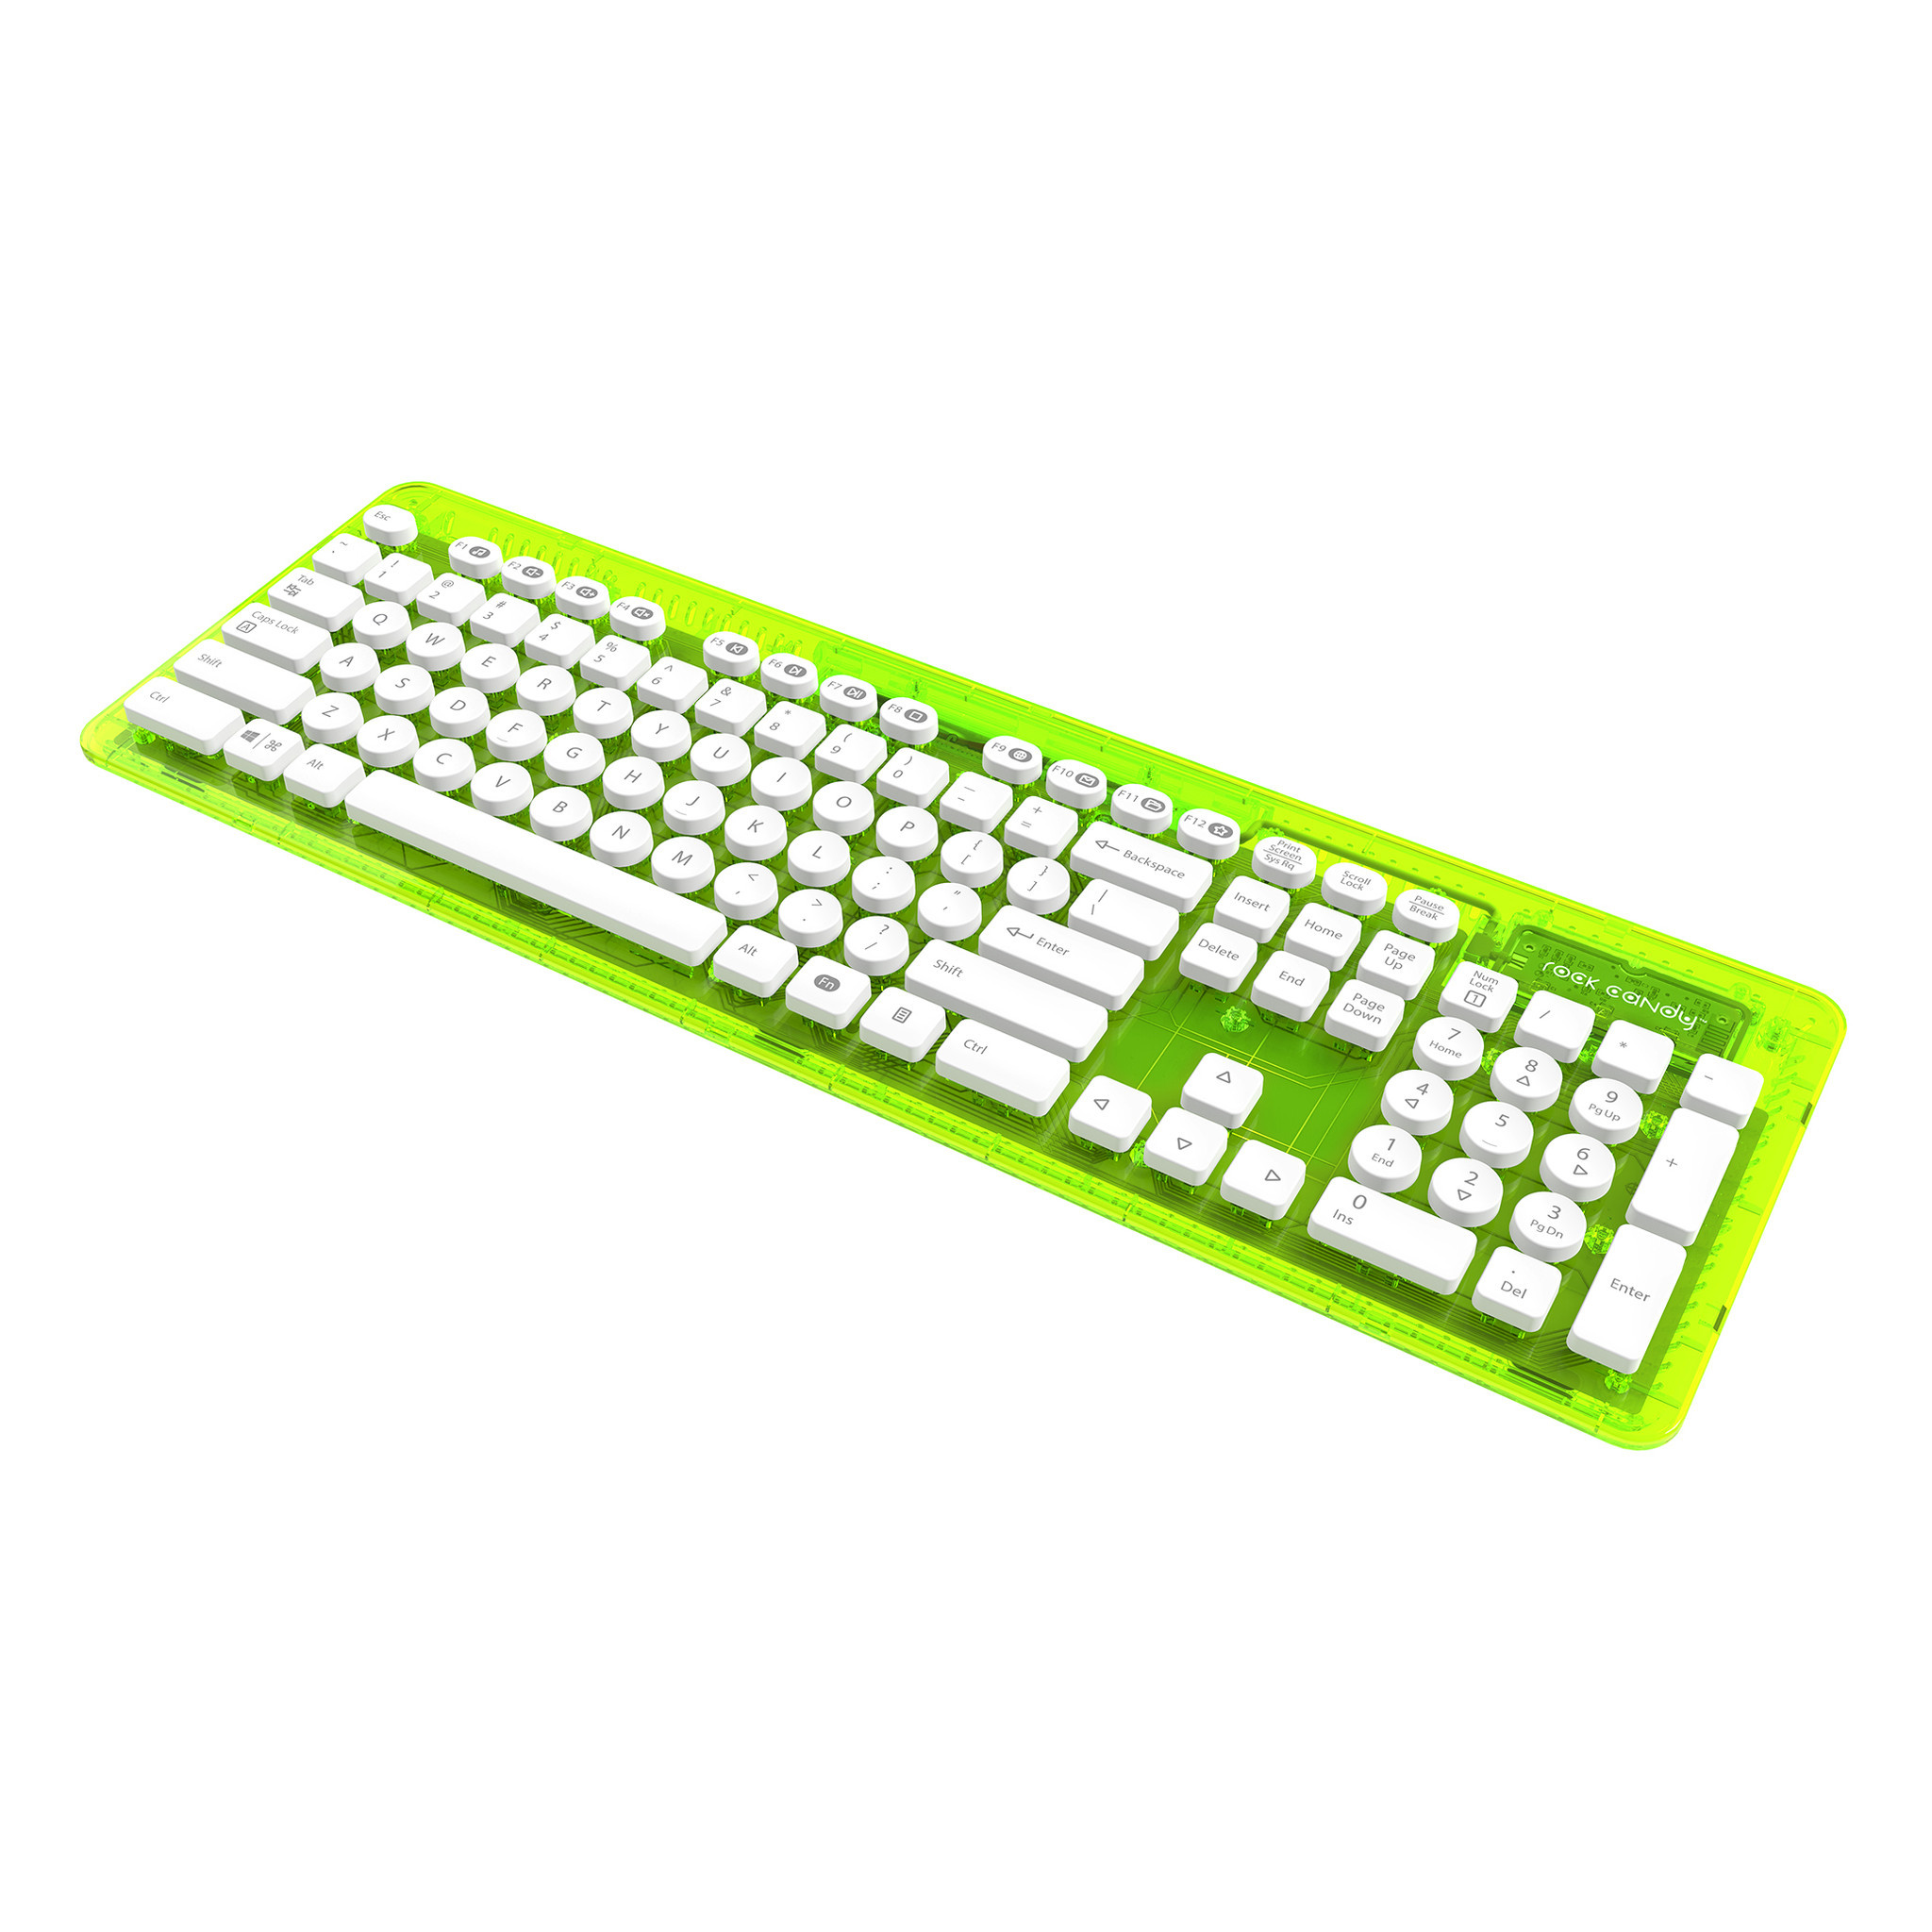 Rock Candy Wireless Keyboard - Lalalime (Nordic Layout)